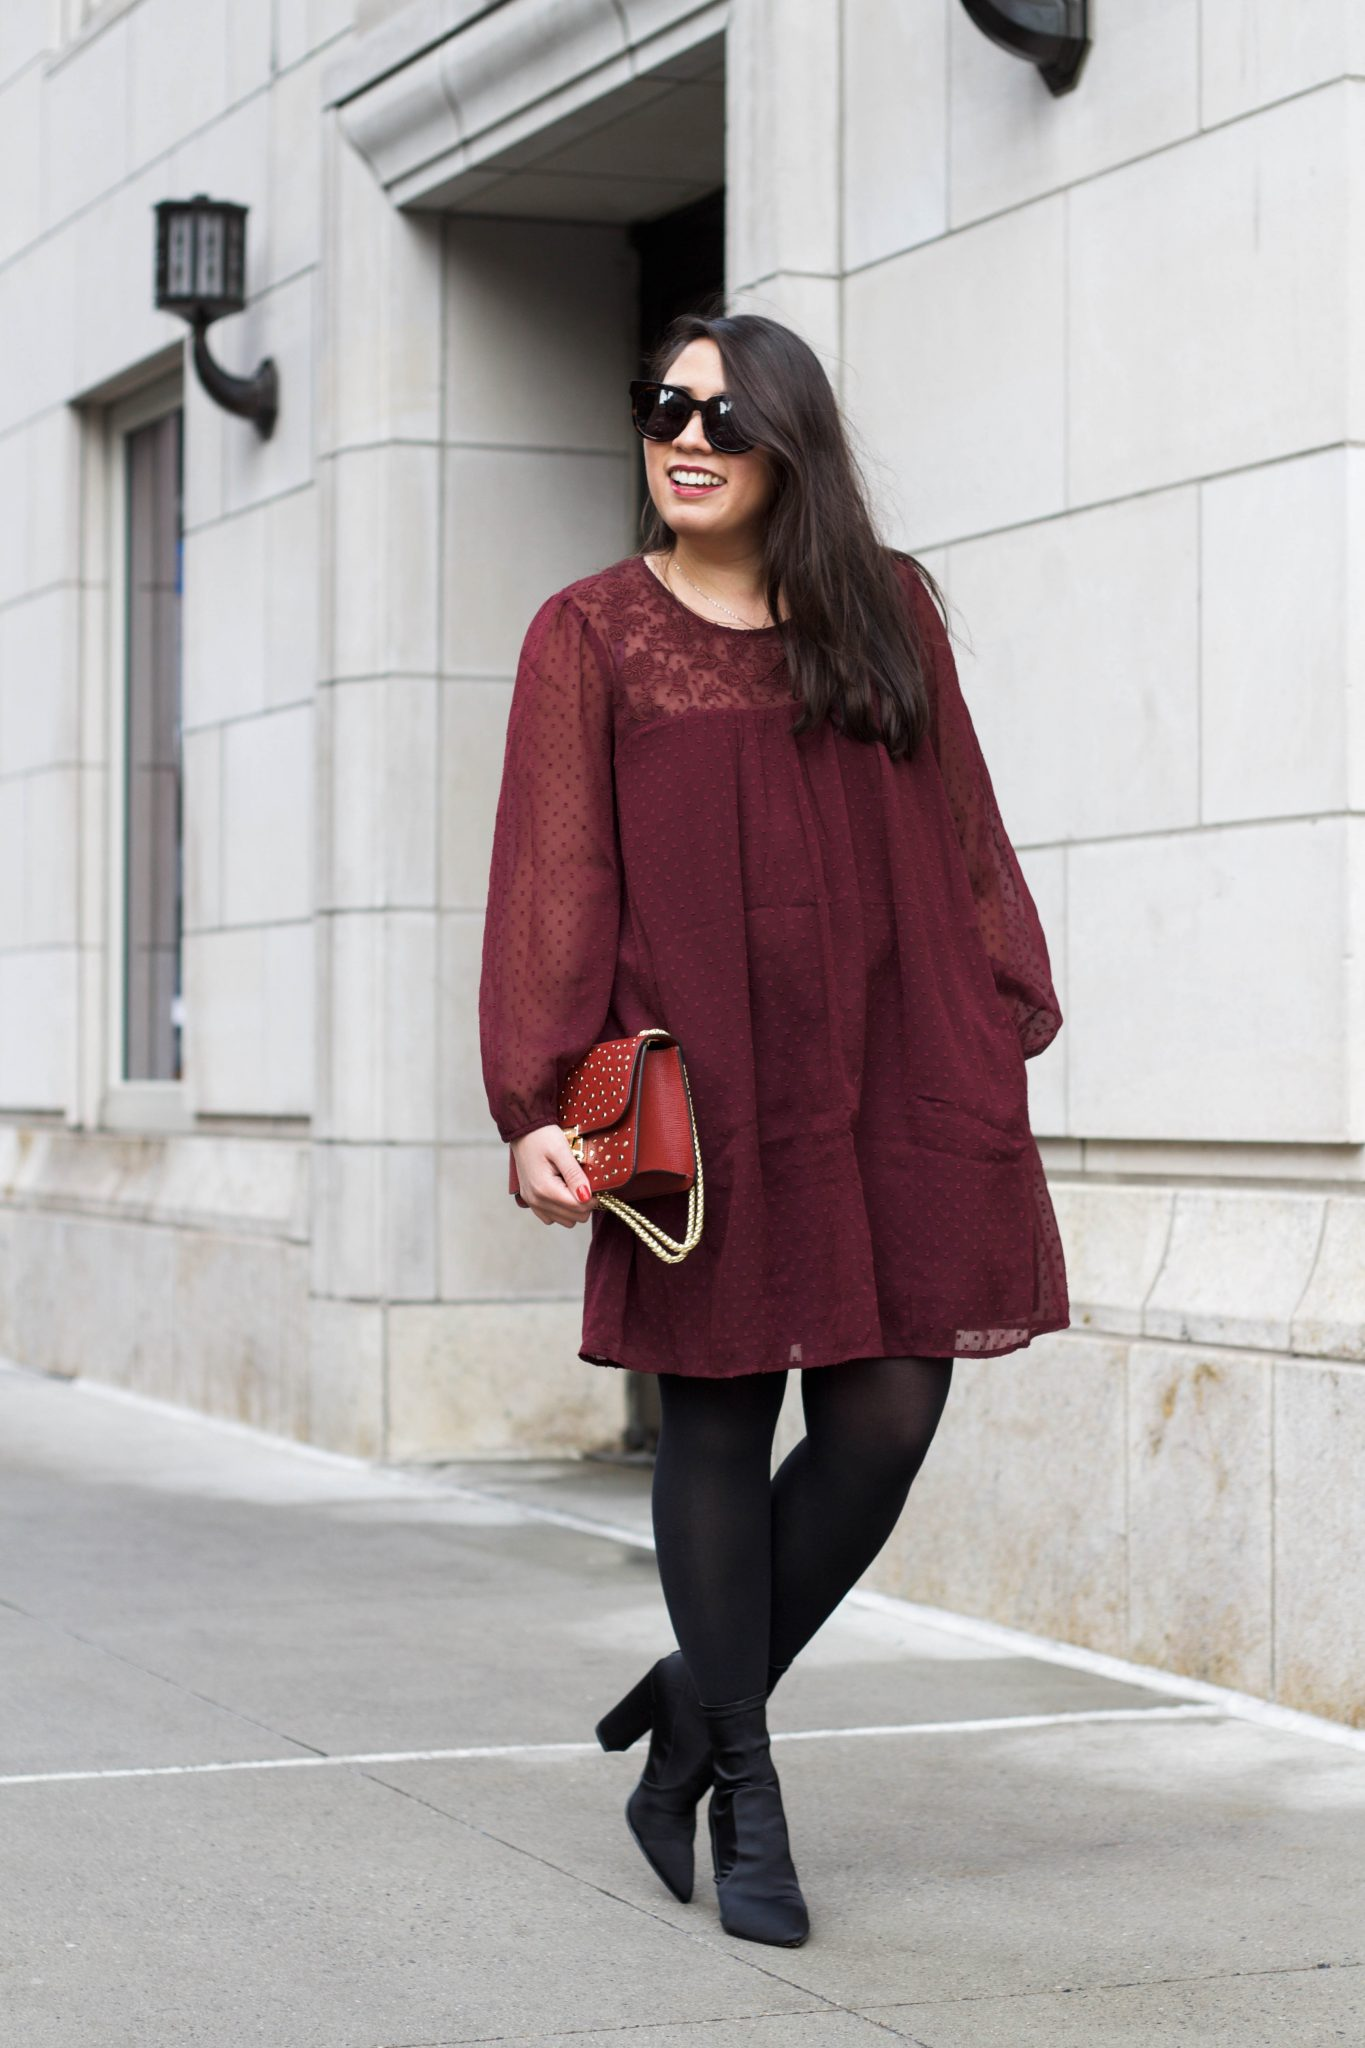 Abercrombie & Fitch embroidered chiffon dress styled by popular NYC fashion blogger Live Laugh Linda